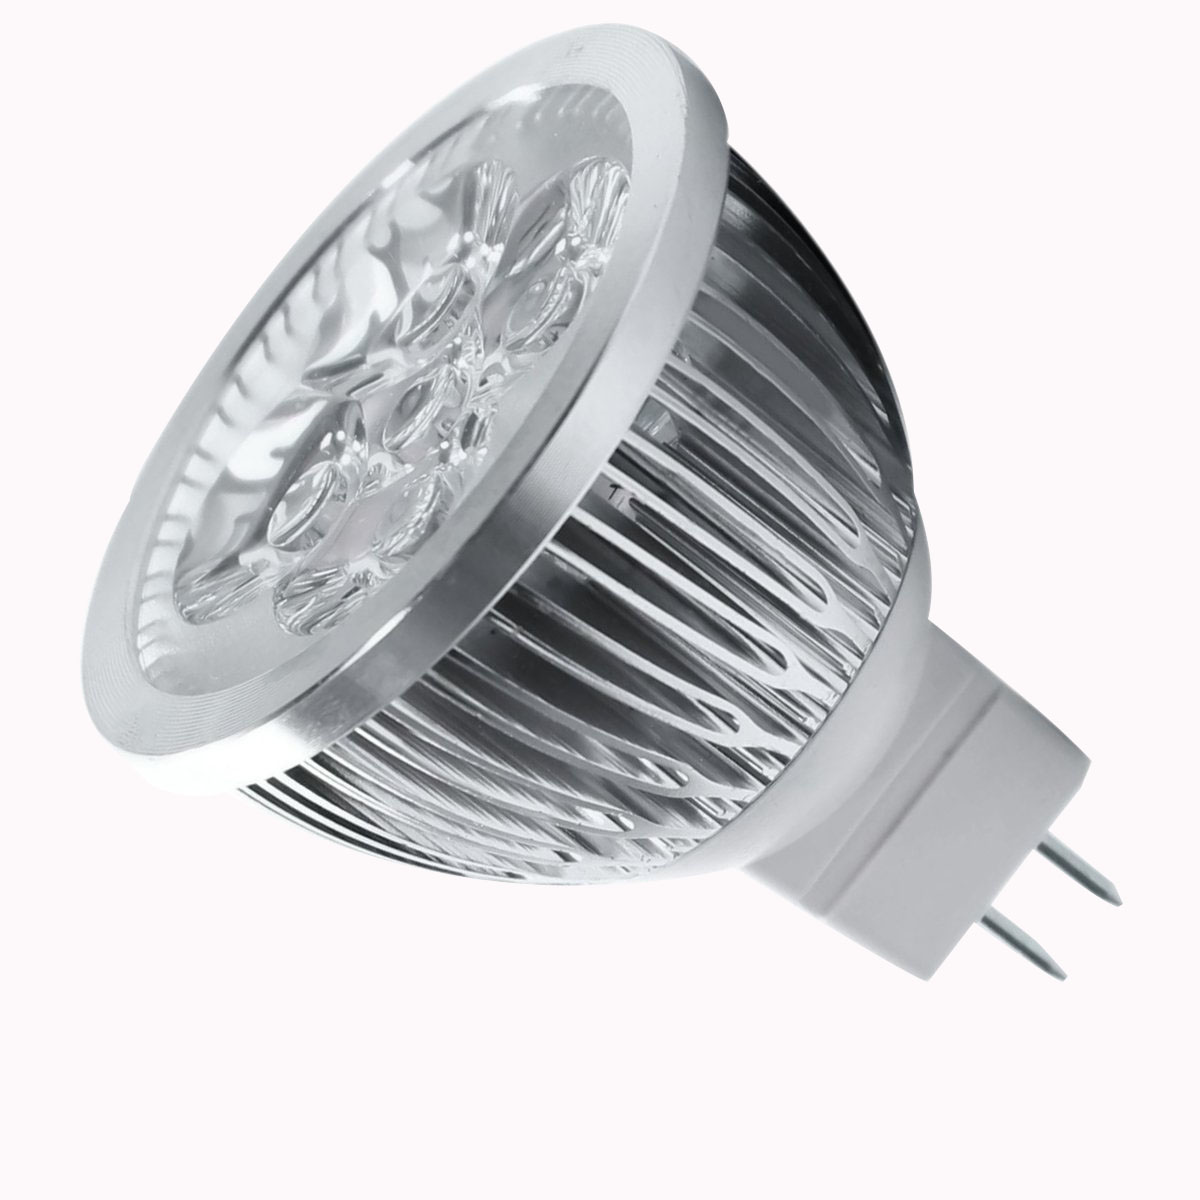 Led Birnen 12v 4w Dimmbar Mr16 Led Birne 3200k Warmes Weiss Led